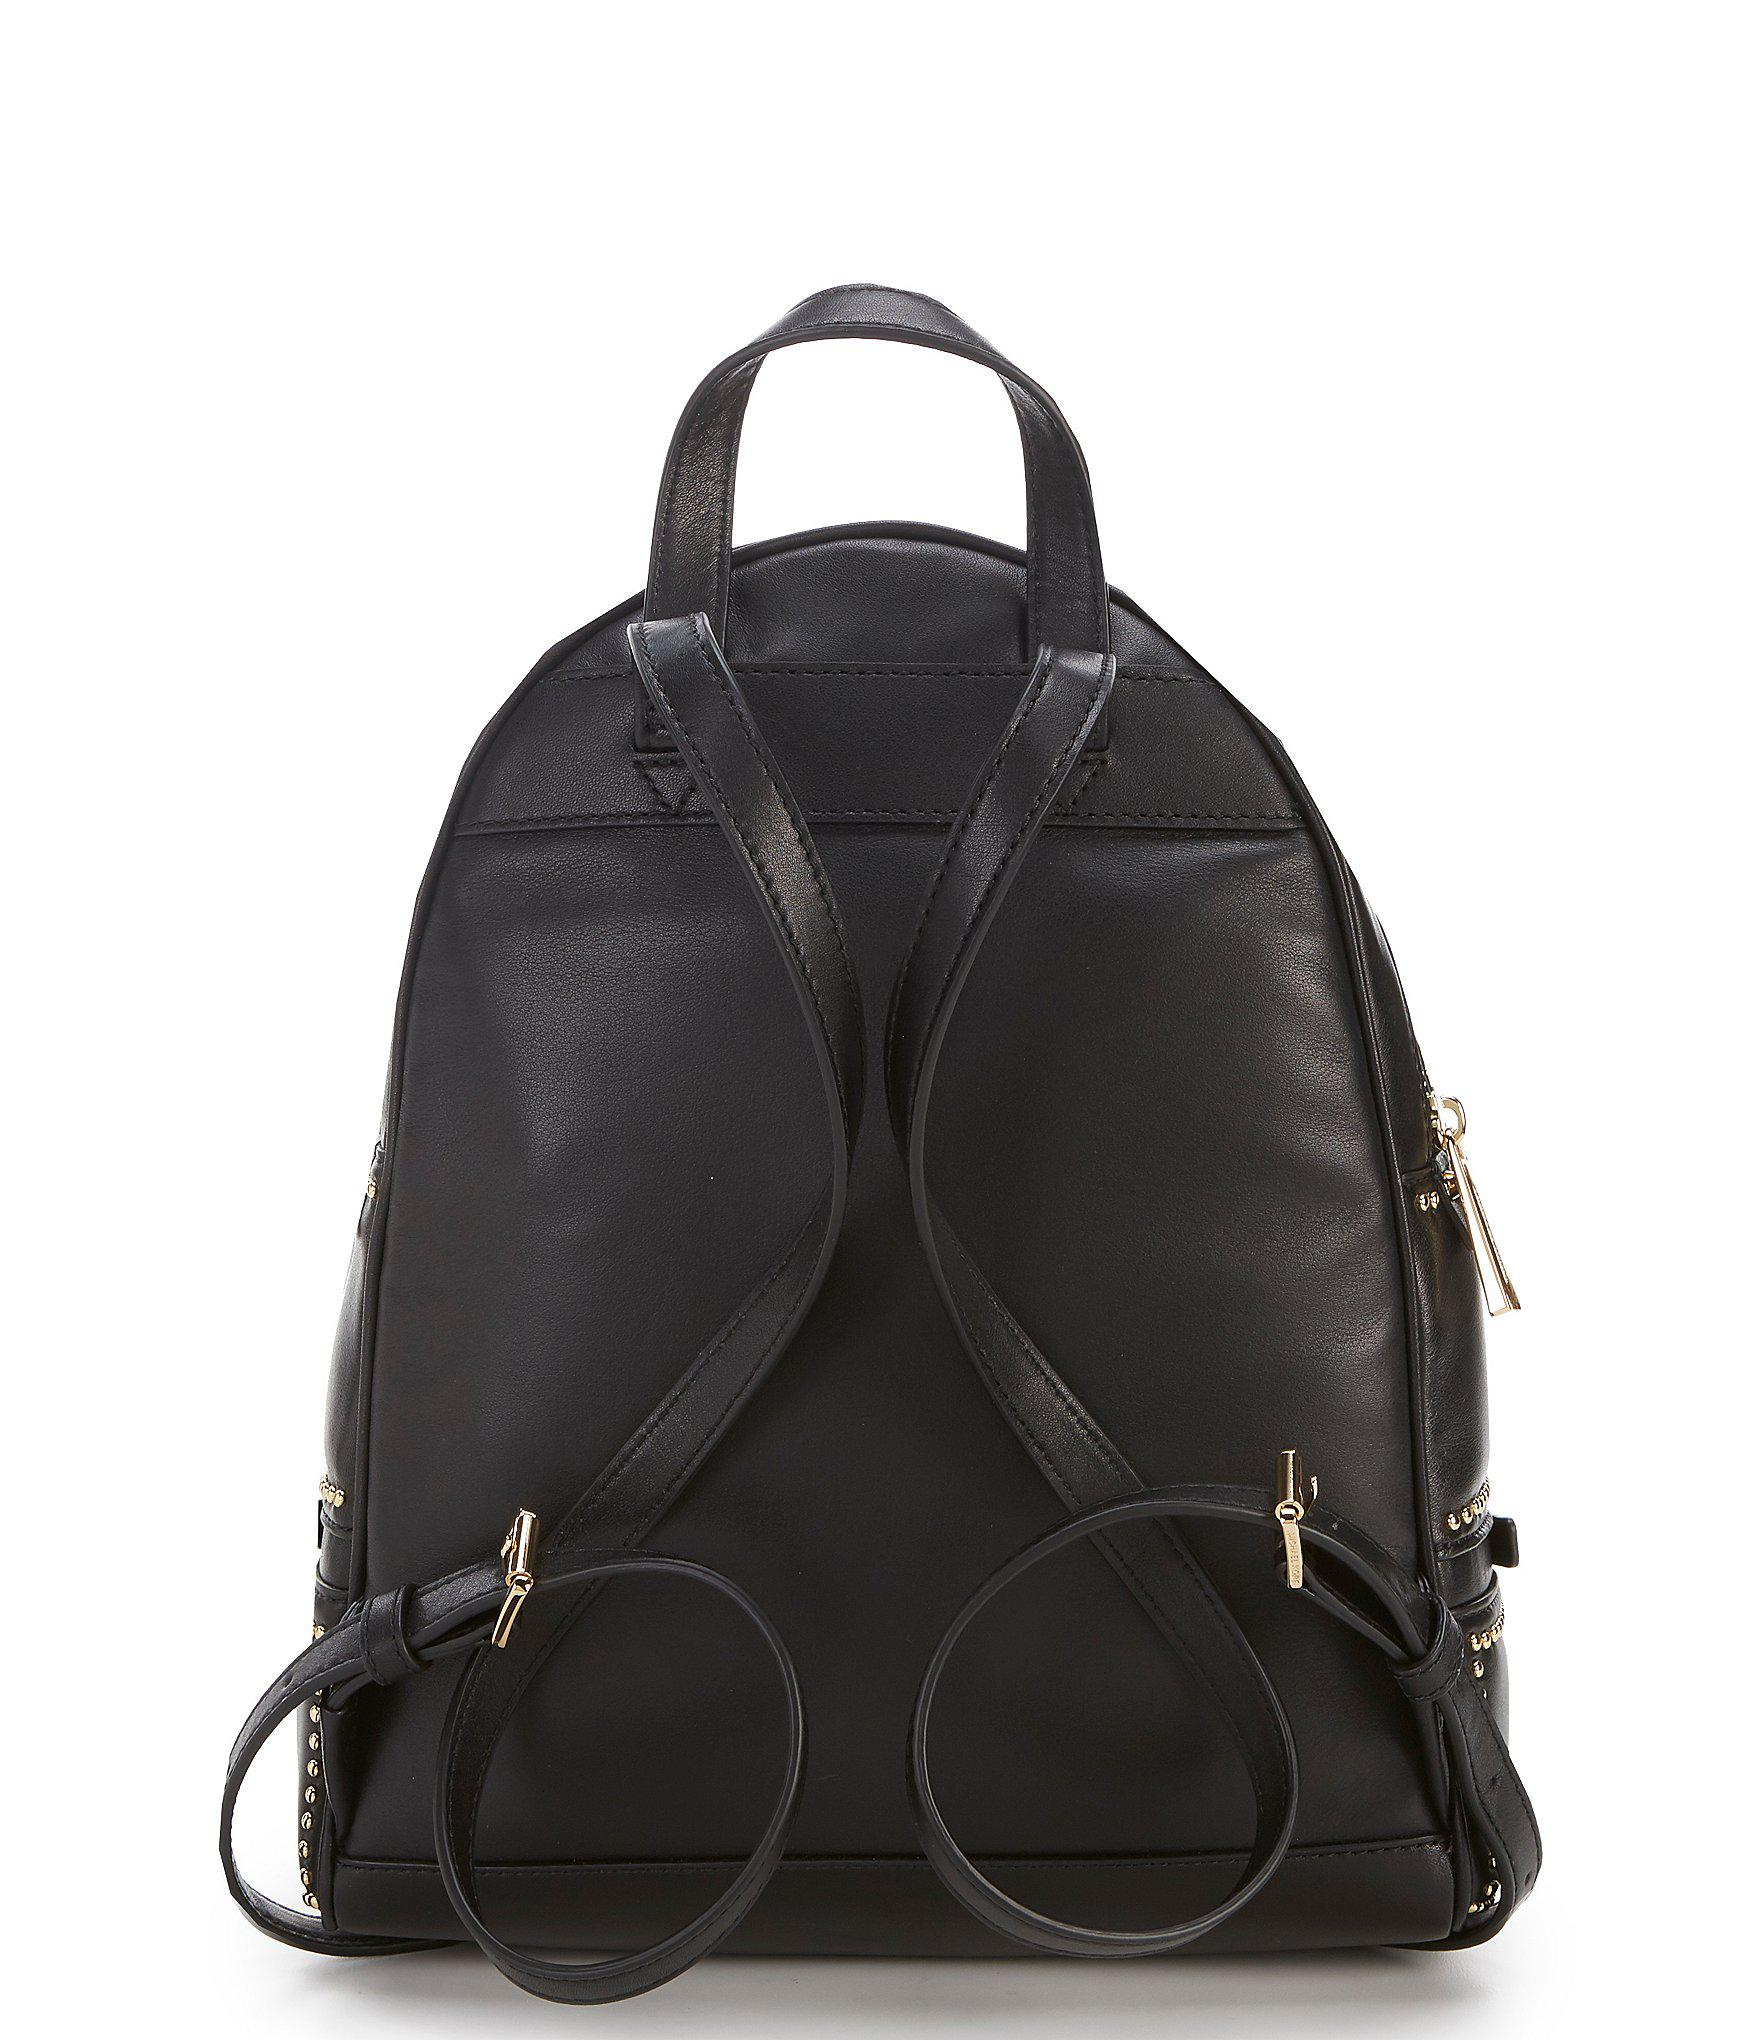 MICHAEL Michael Kors - Black Medium Studded Rhea Backpack - Lyst. View  fullscreen d5a21bd8eb